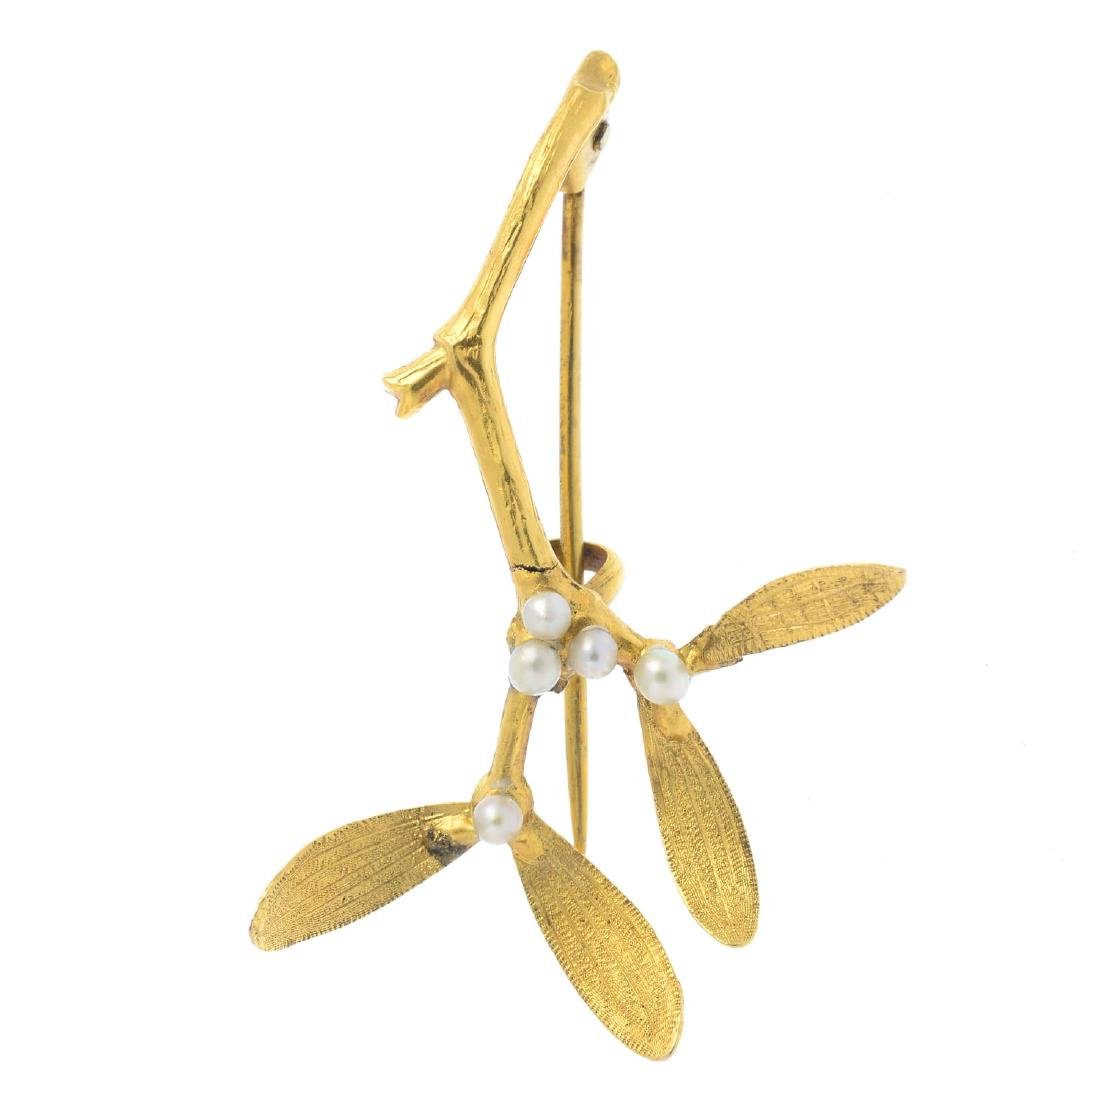 An early 20th century 15ct gold seed pearl brooch.